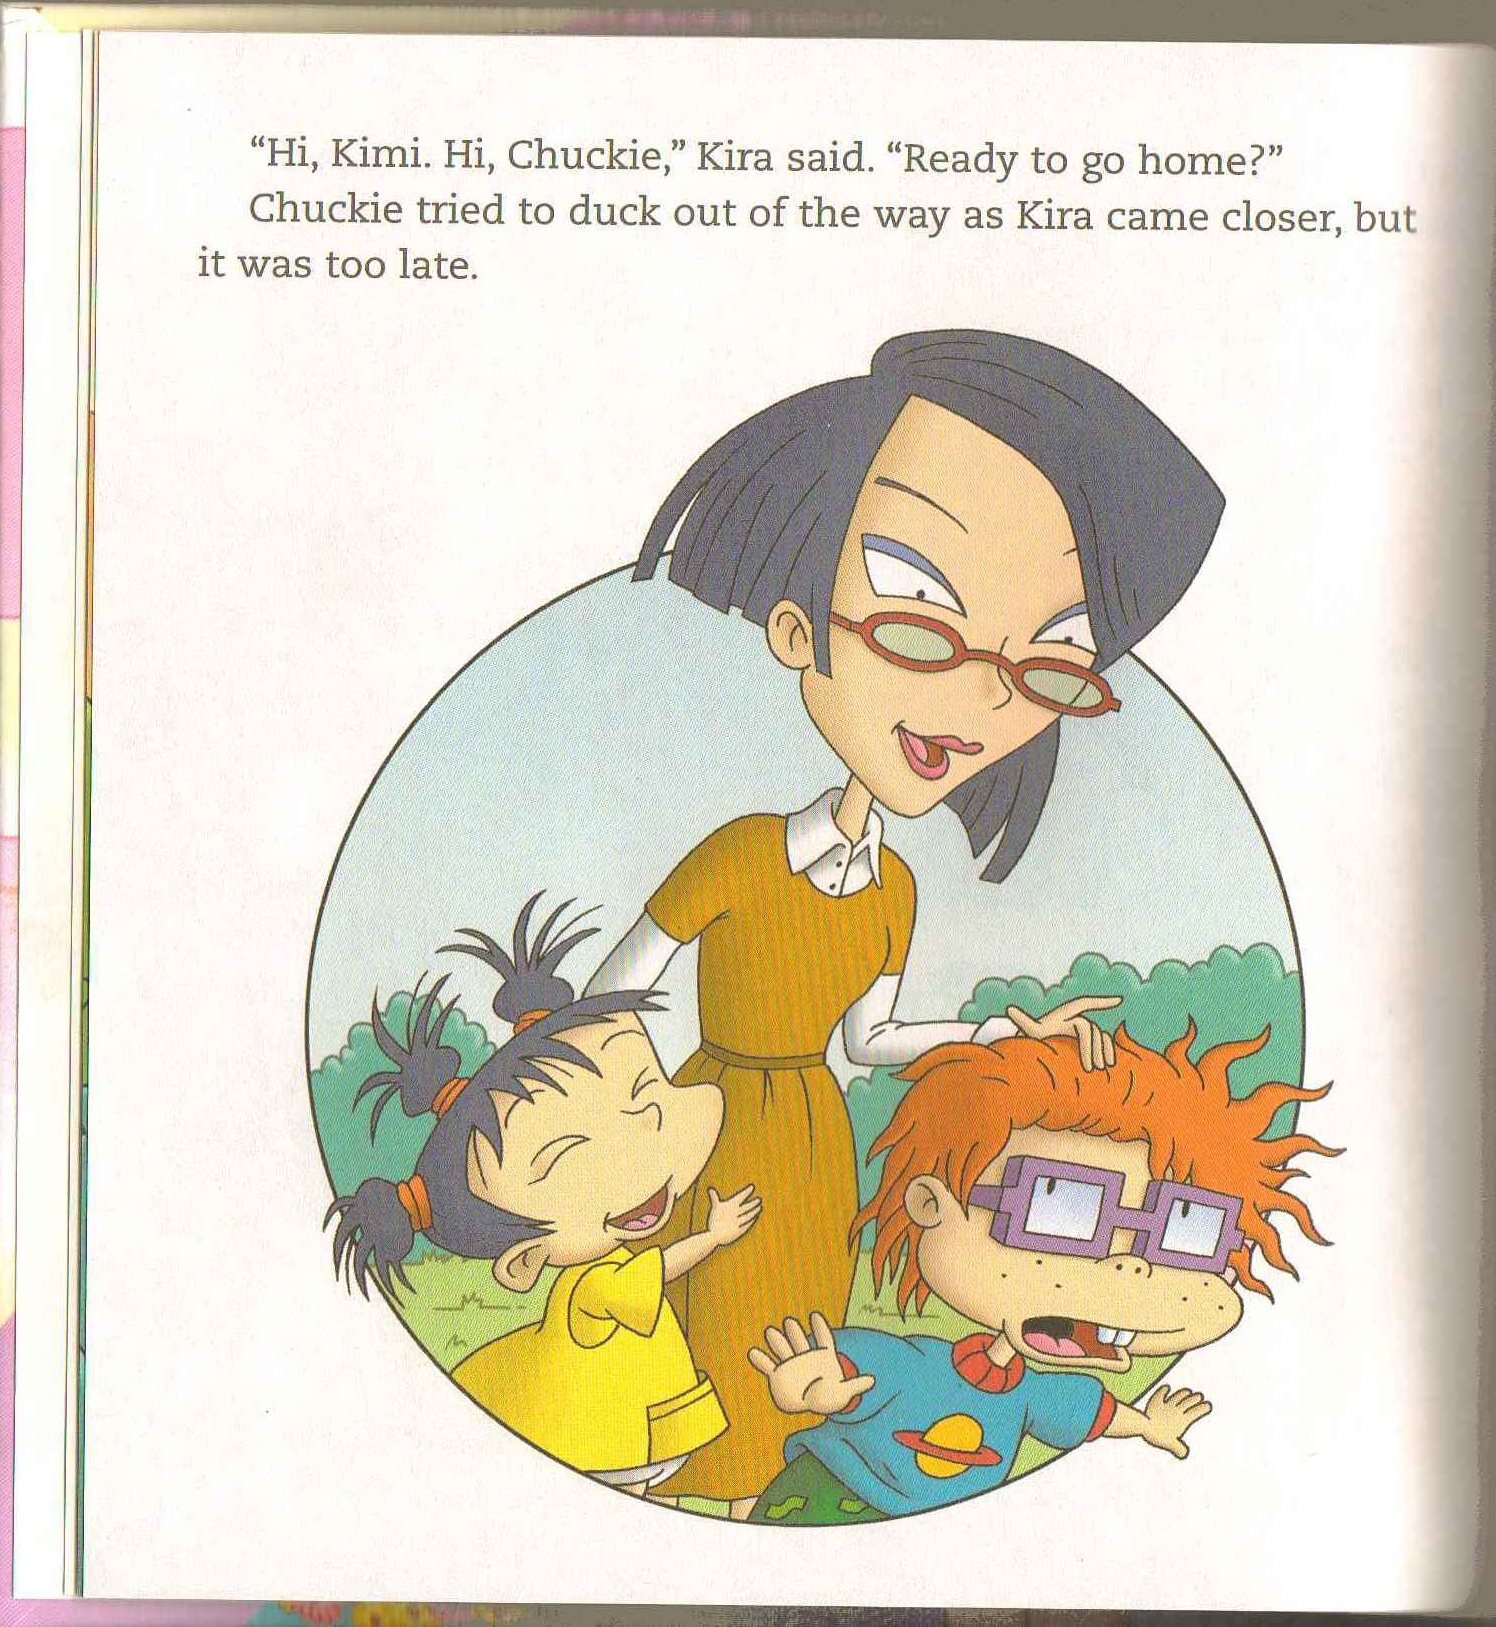 Kimi Finster/Gallery/Chuckie's New Mommy